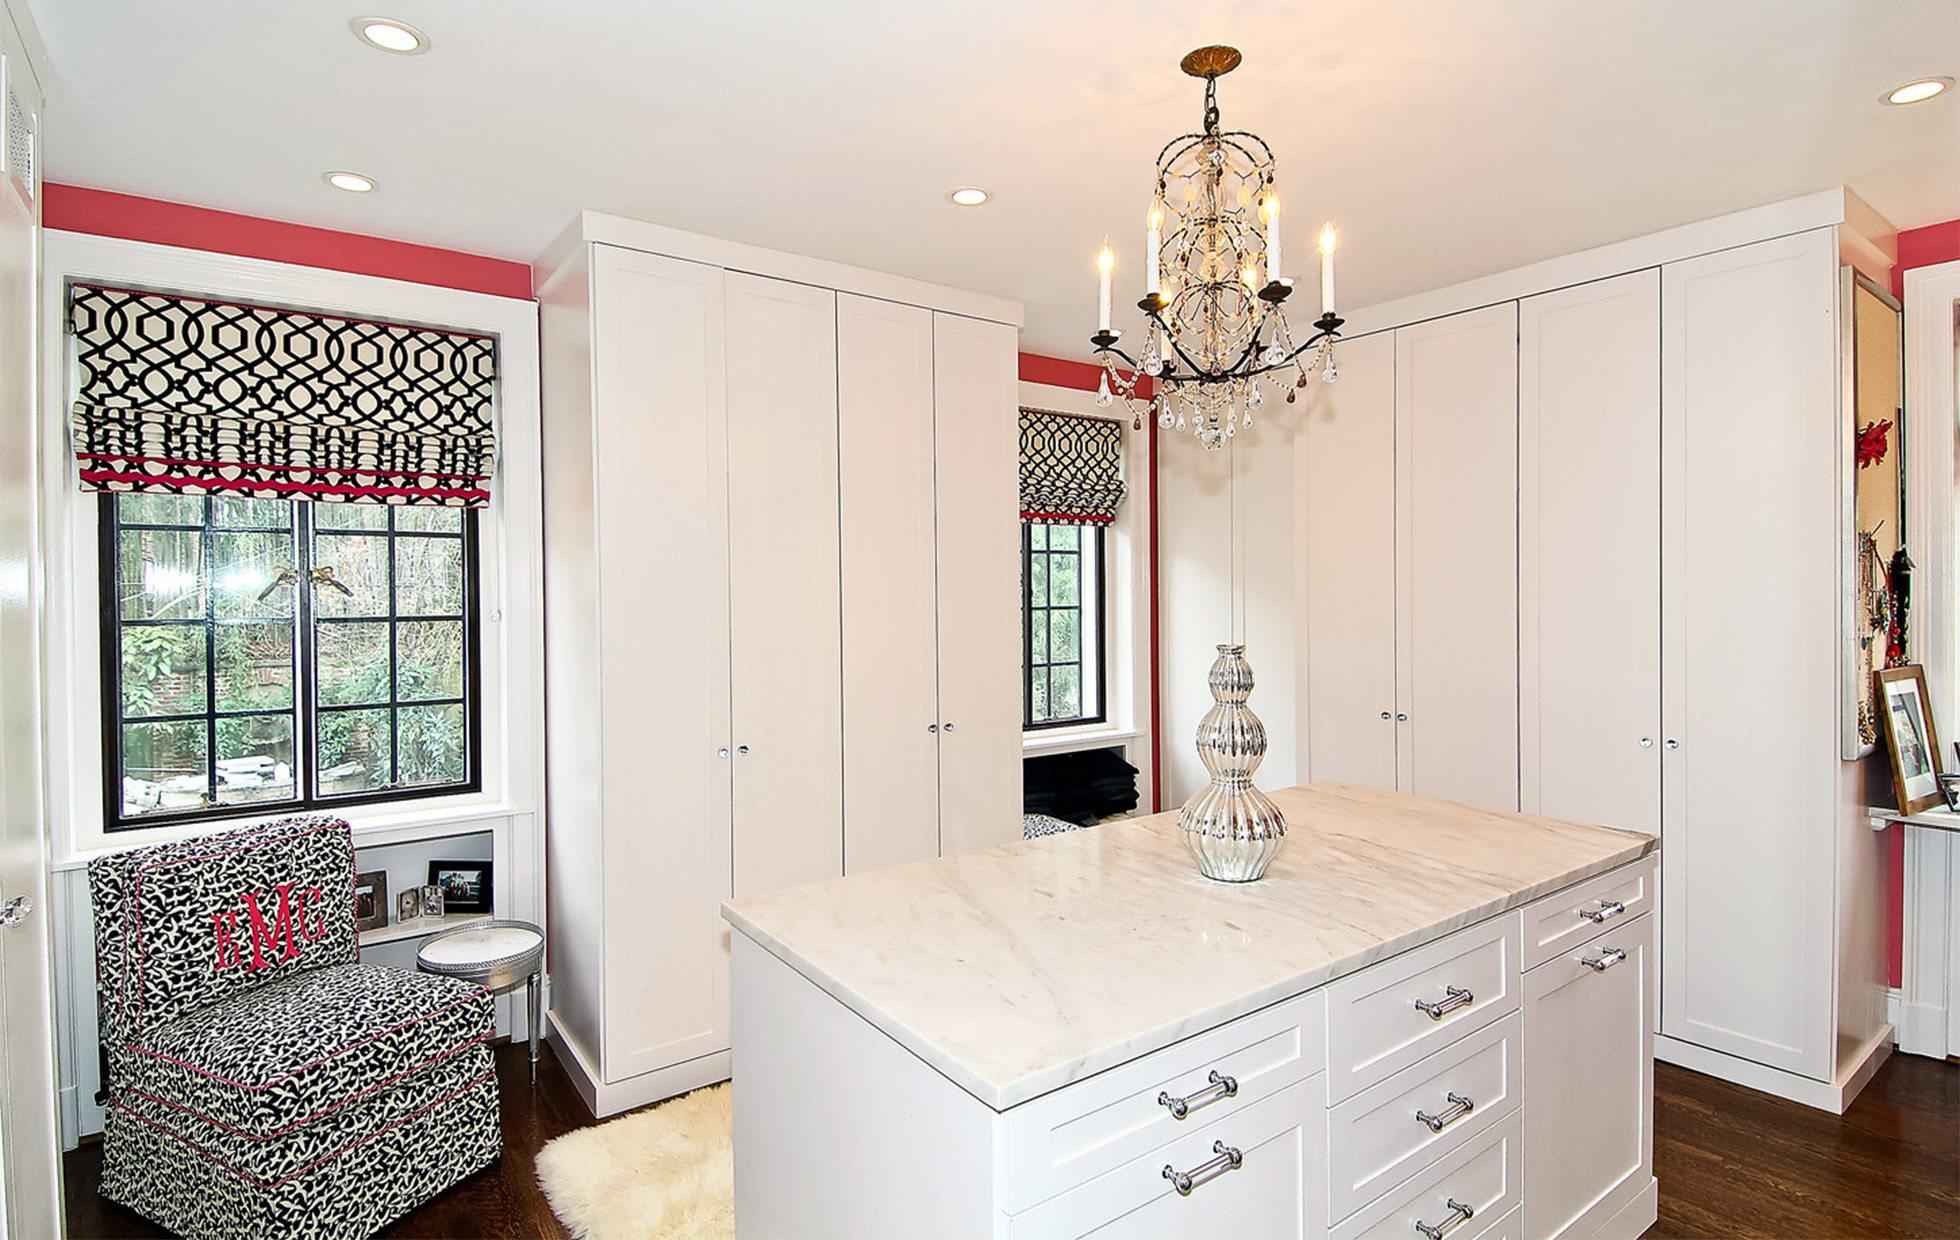 5882007d1def02446-Belmont-Road-NW-Washington-DC-Obamas-New-Home-Her-Dressing-Room